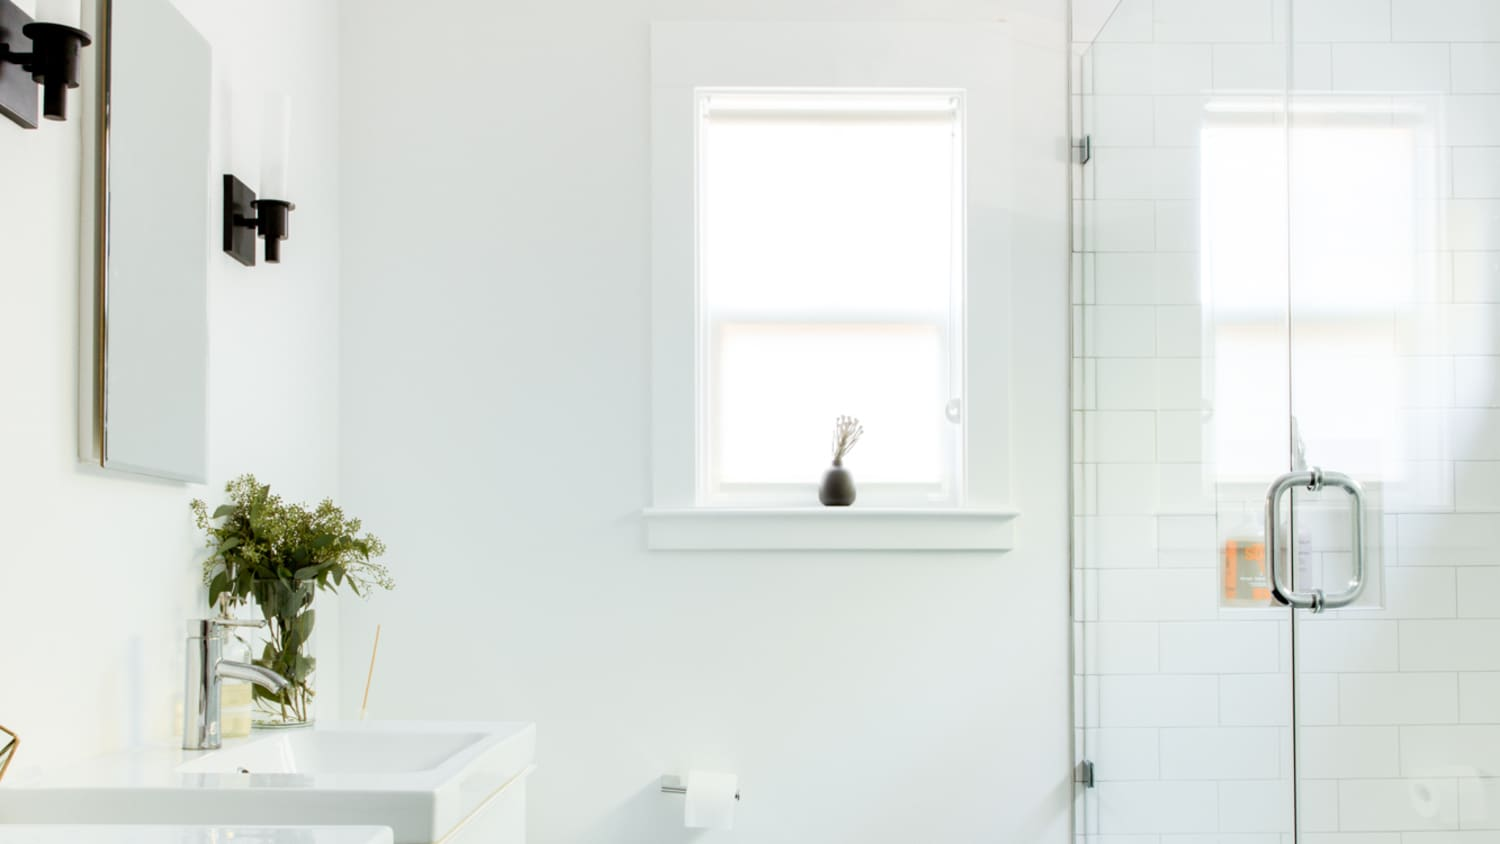 How Long Does Caulking Take To Dry In A Bathroom bathroom caulk - how often should you replace? | apartment